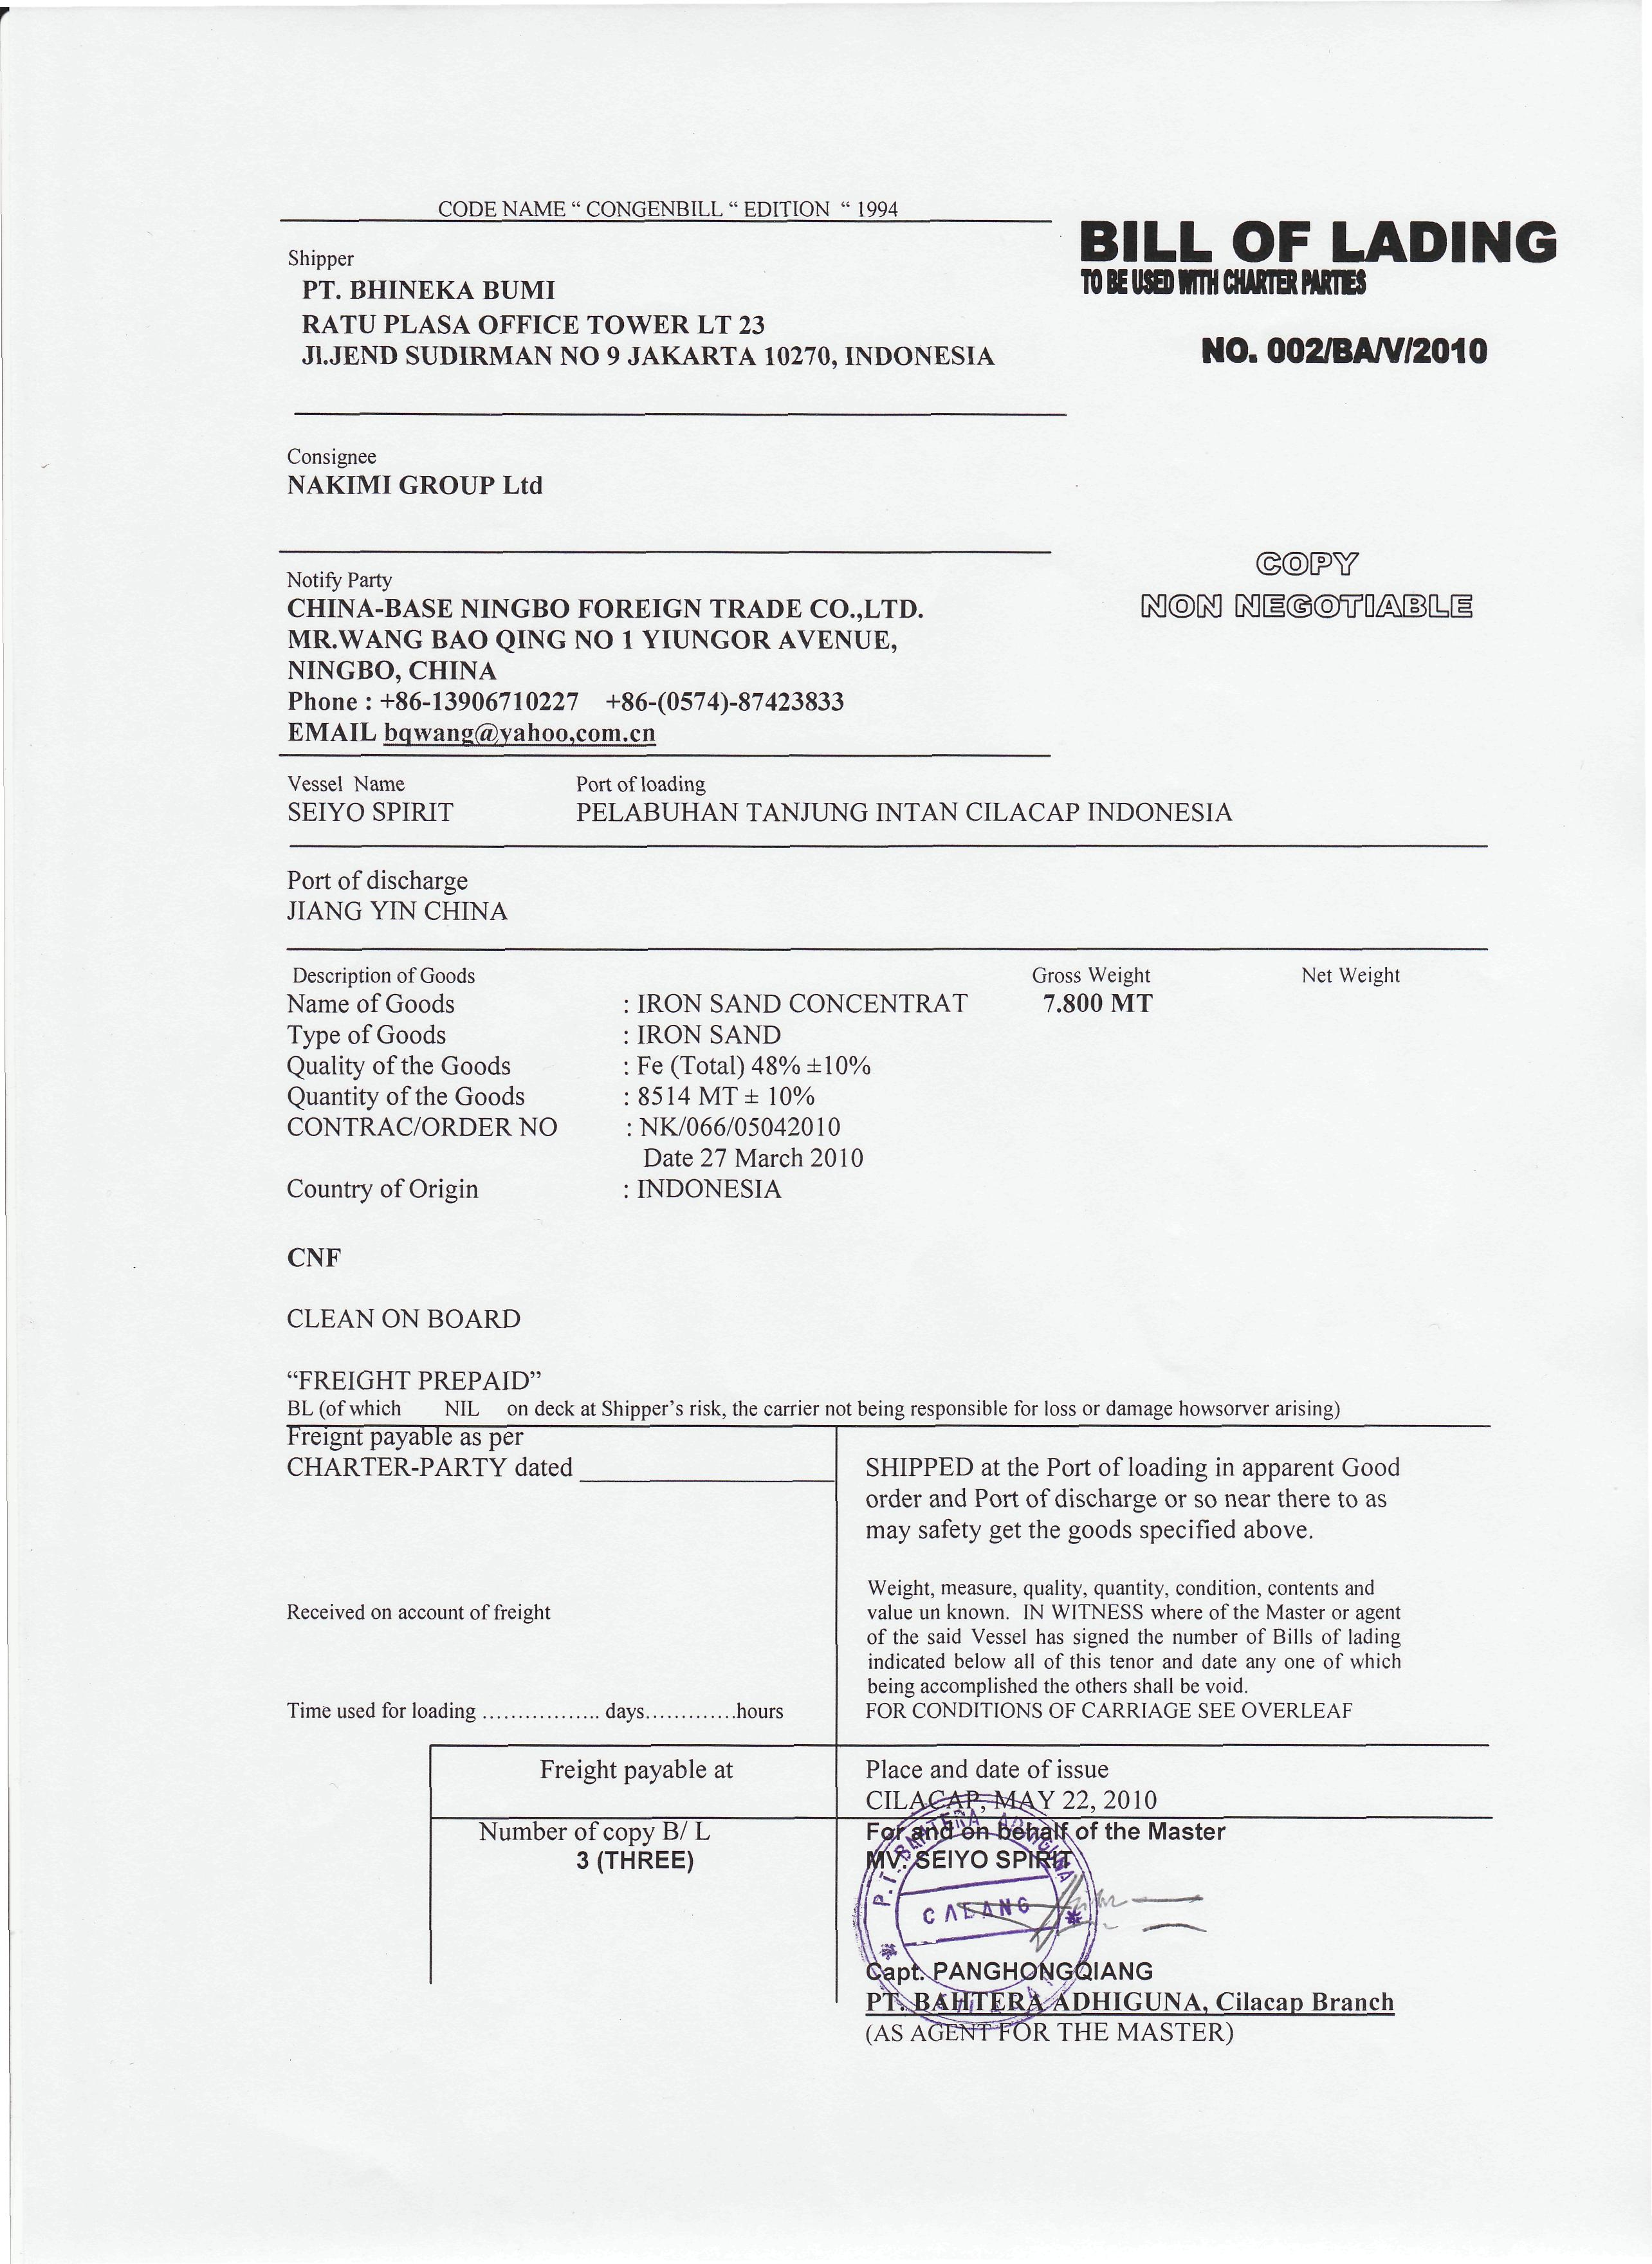 Format Of A Bill Of Lading – Format for a Bill